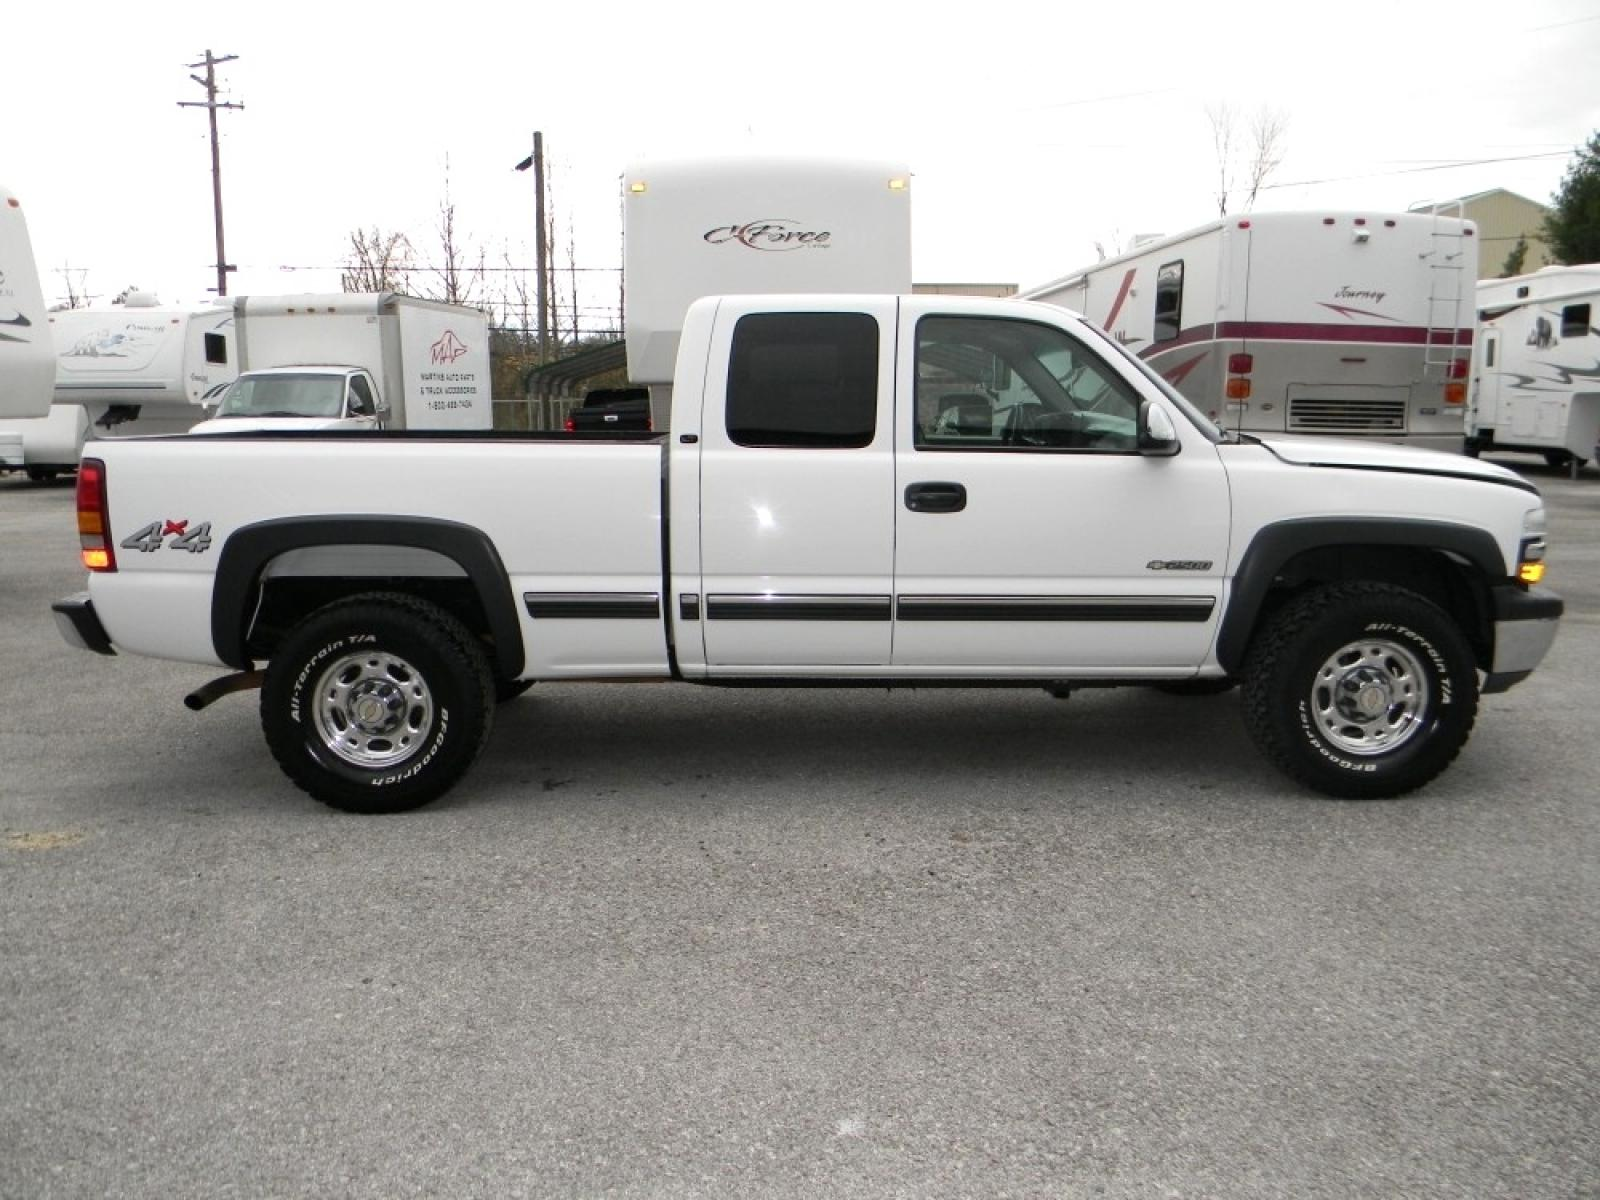 2002 Chevrolet Silverado 2500 Information And Photos Zombiedrive Wiring Diagram 800 1024 1280 1600 Origin